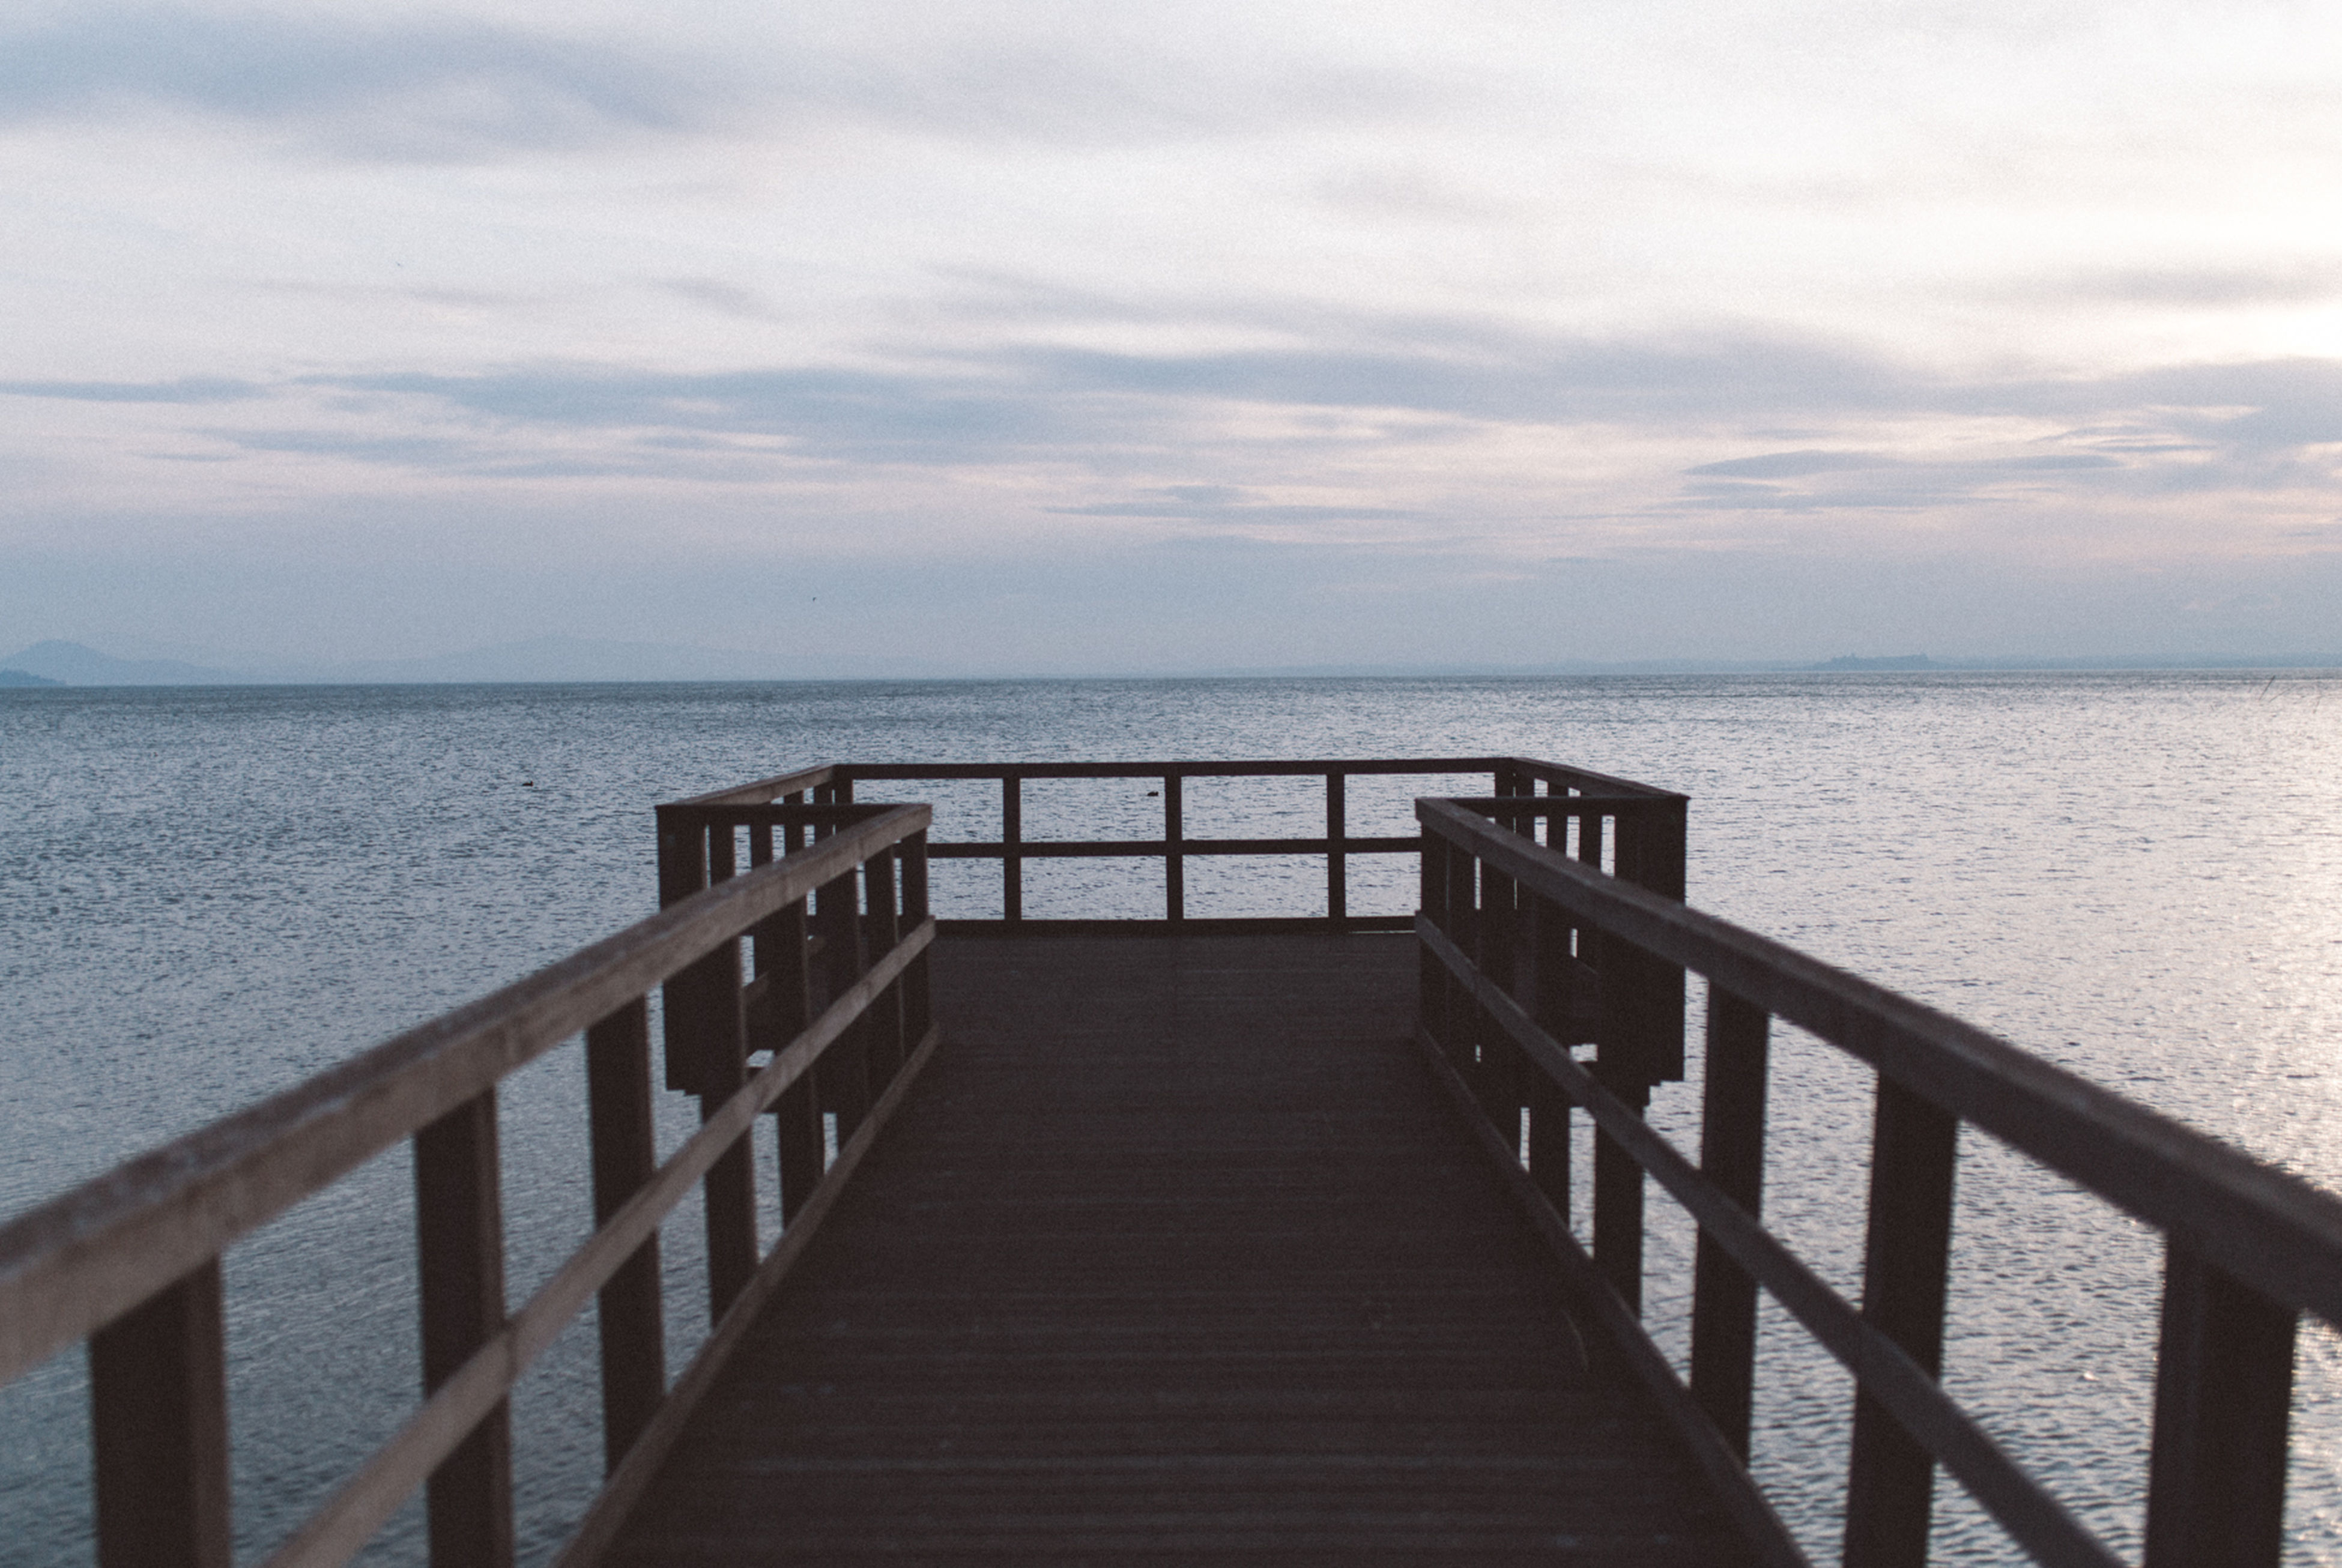 railing, sea, beauty in nature, nature, no people, scenics, outdoors, wheelchair access, sky, day, water